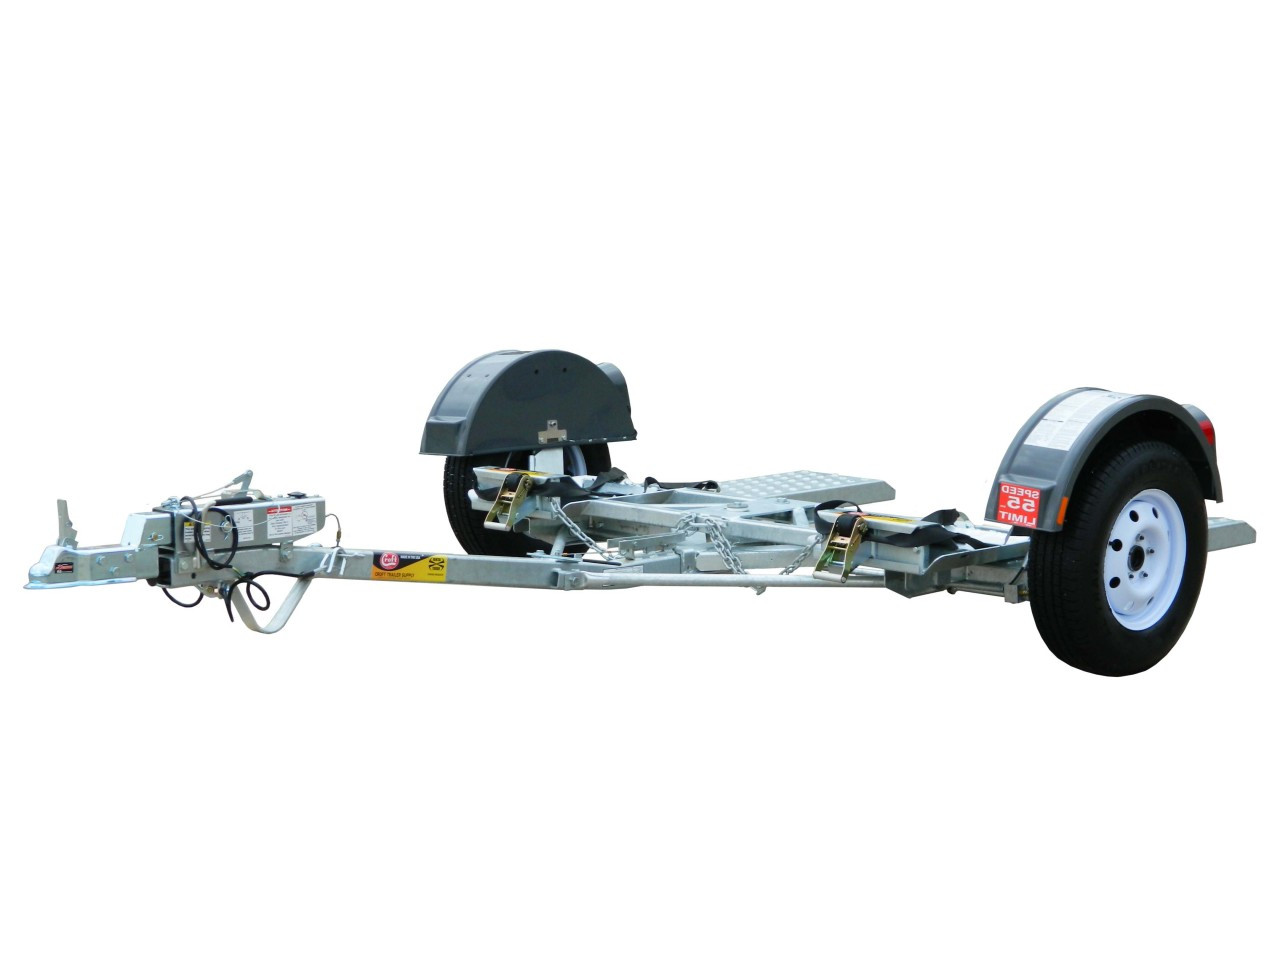 CGTD76DB --- CROFT Torsion Axle Tow Dolly with Surge Disc Brakes - GT400